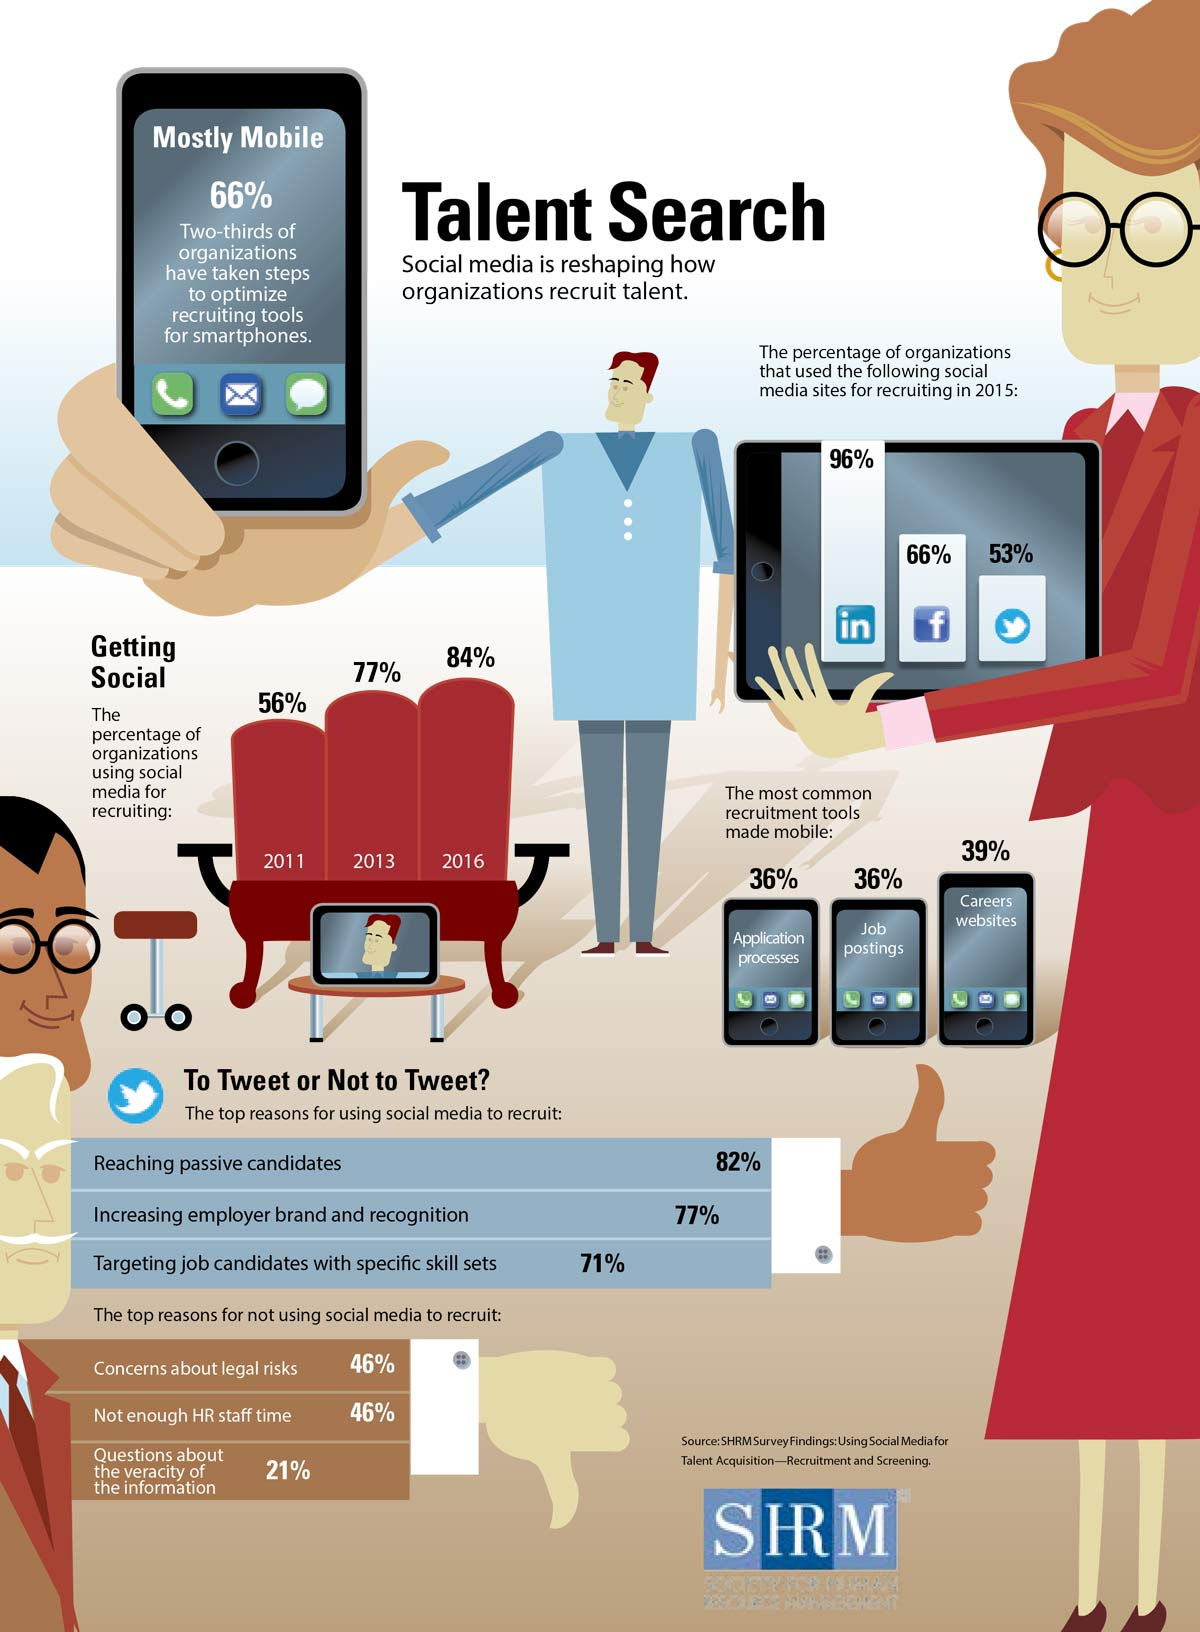 Social media is reshaping how organizations recruit talent.